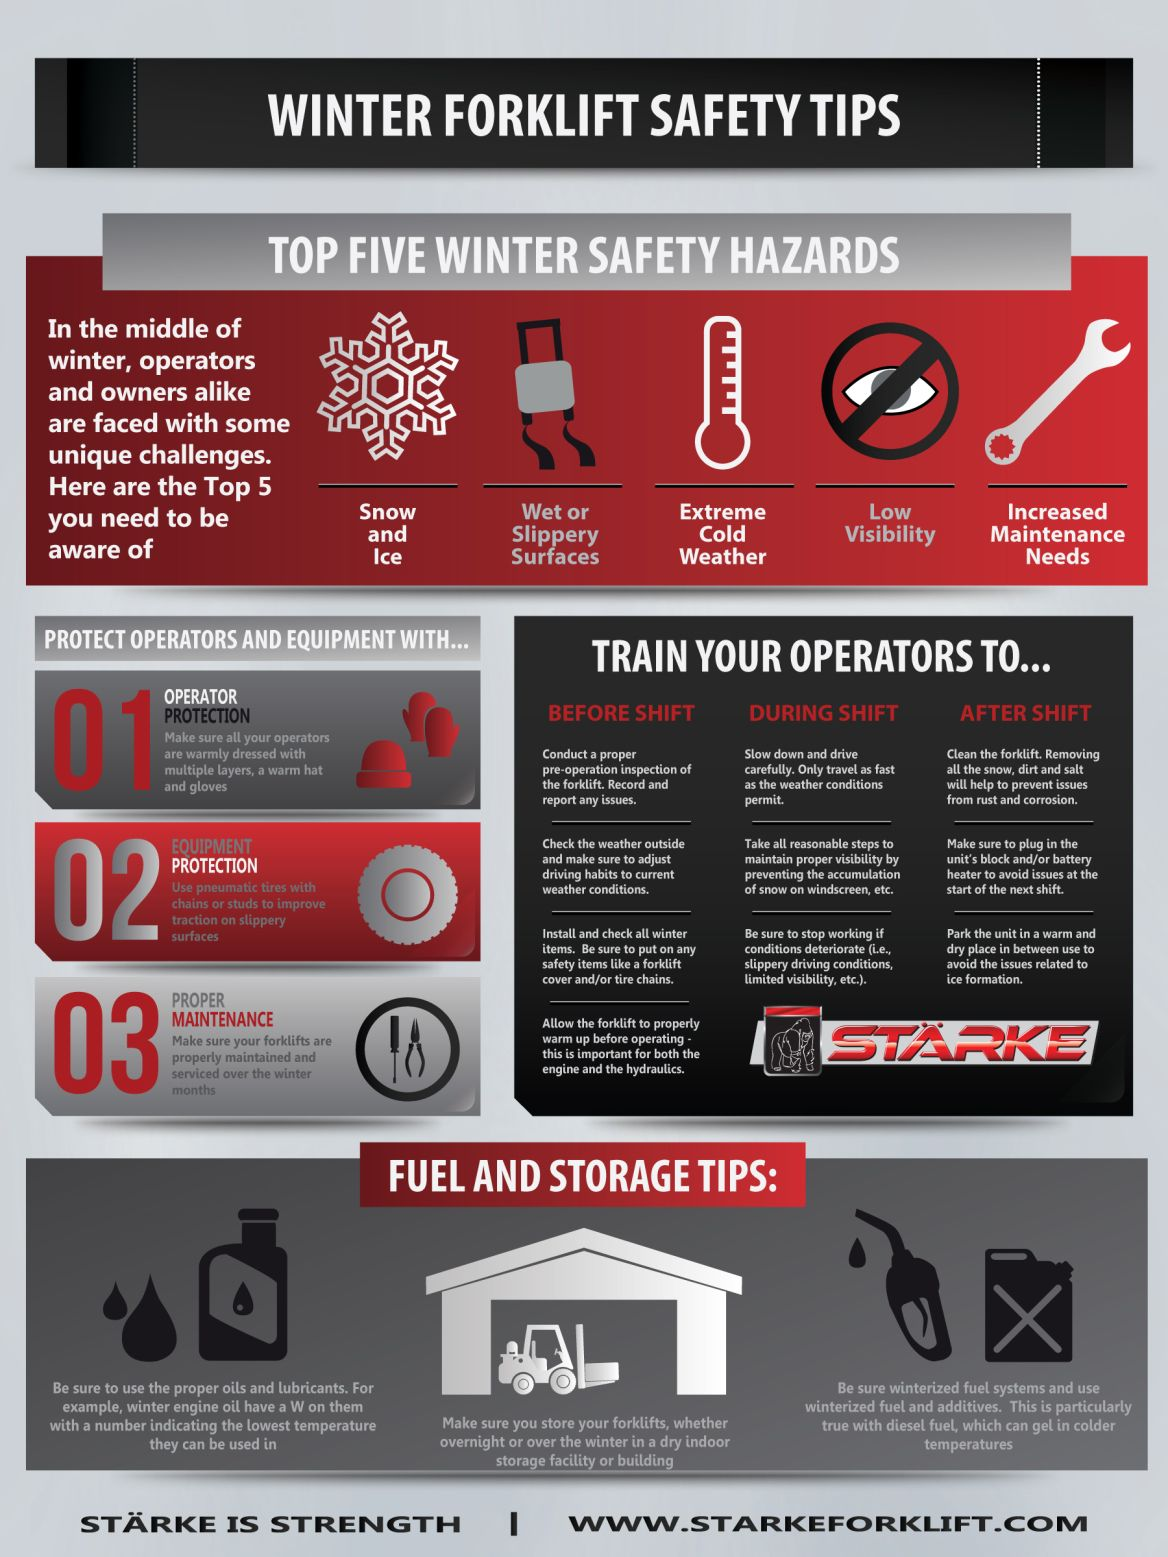 EHS News, Workplace Safety, and OSHA Updates for the